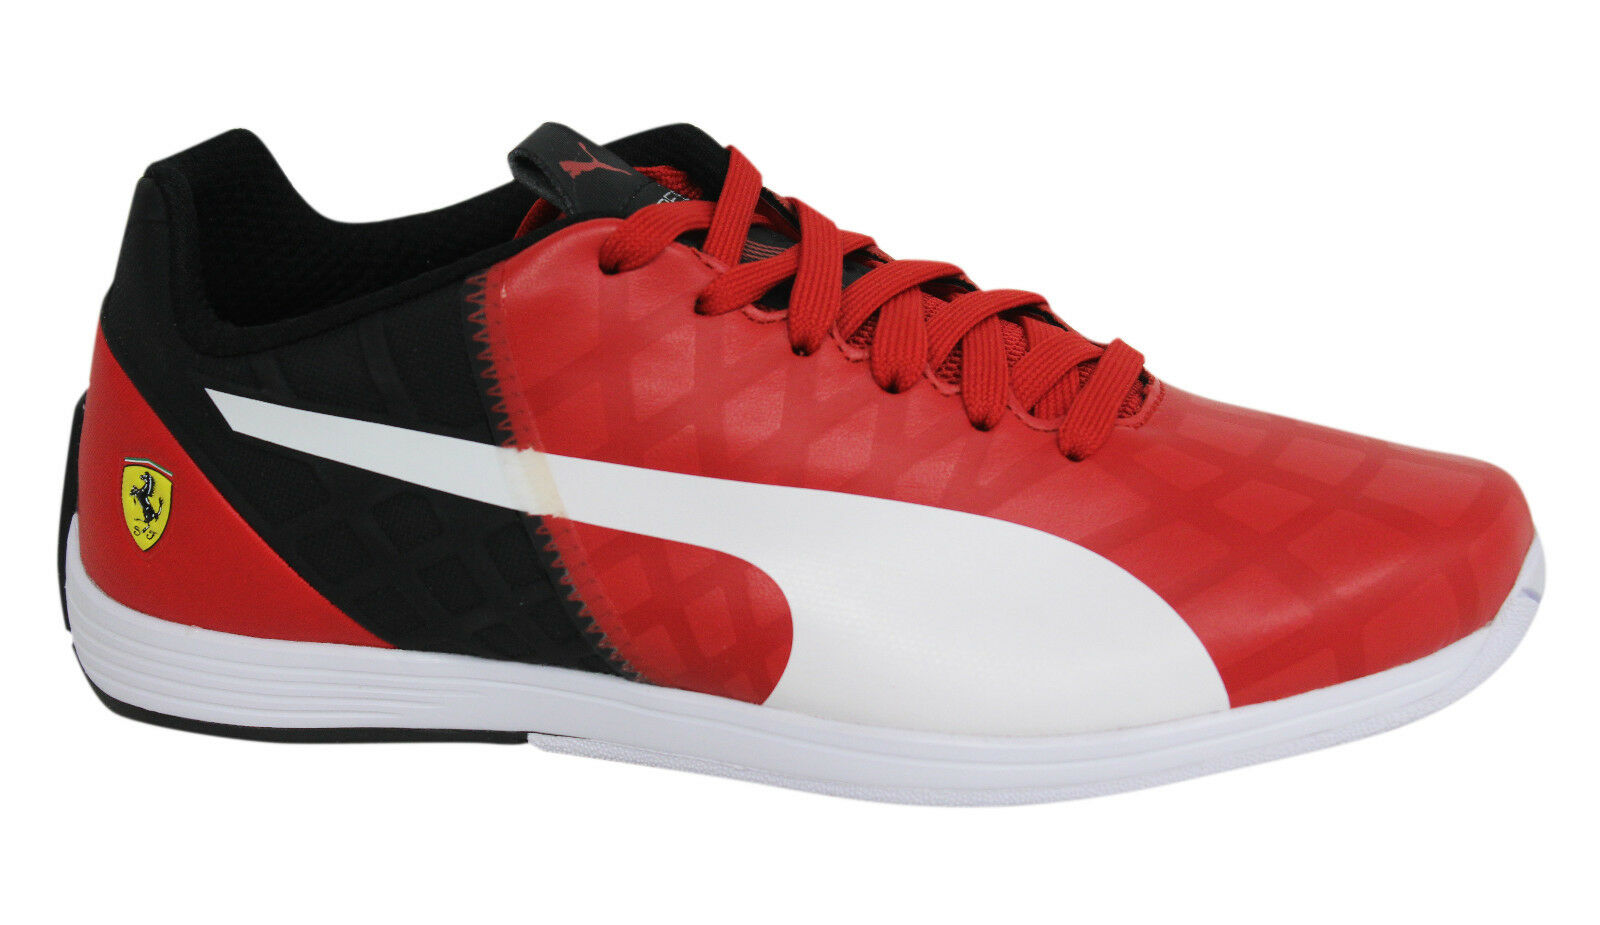 Puma evoSPEED 1.4 Lace Up Red Black Leather Mens Trainers 305555 02 M10